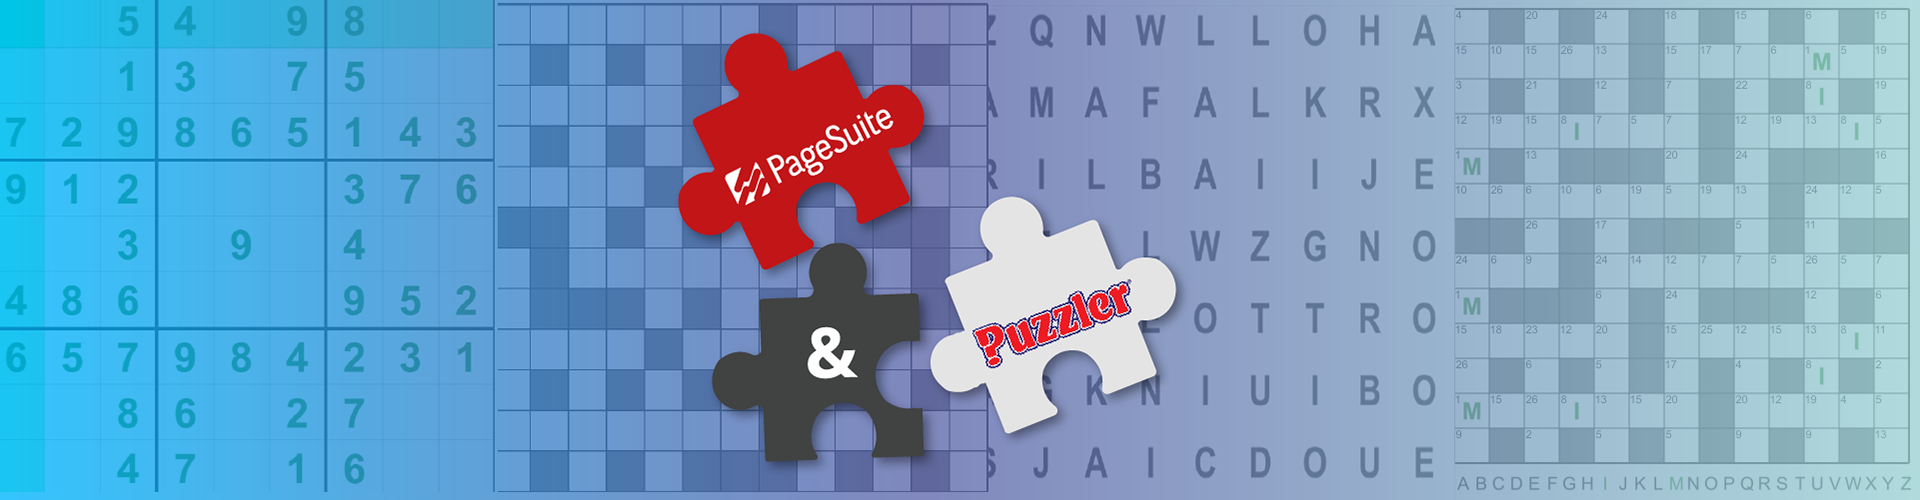 PageSuite Add Final Piece of The Puzzle with New Technology Partnership